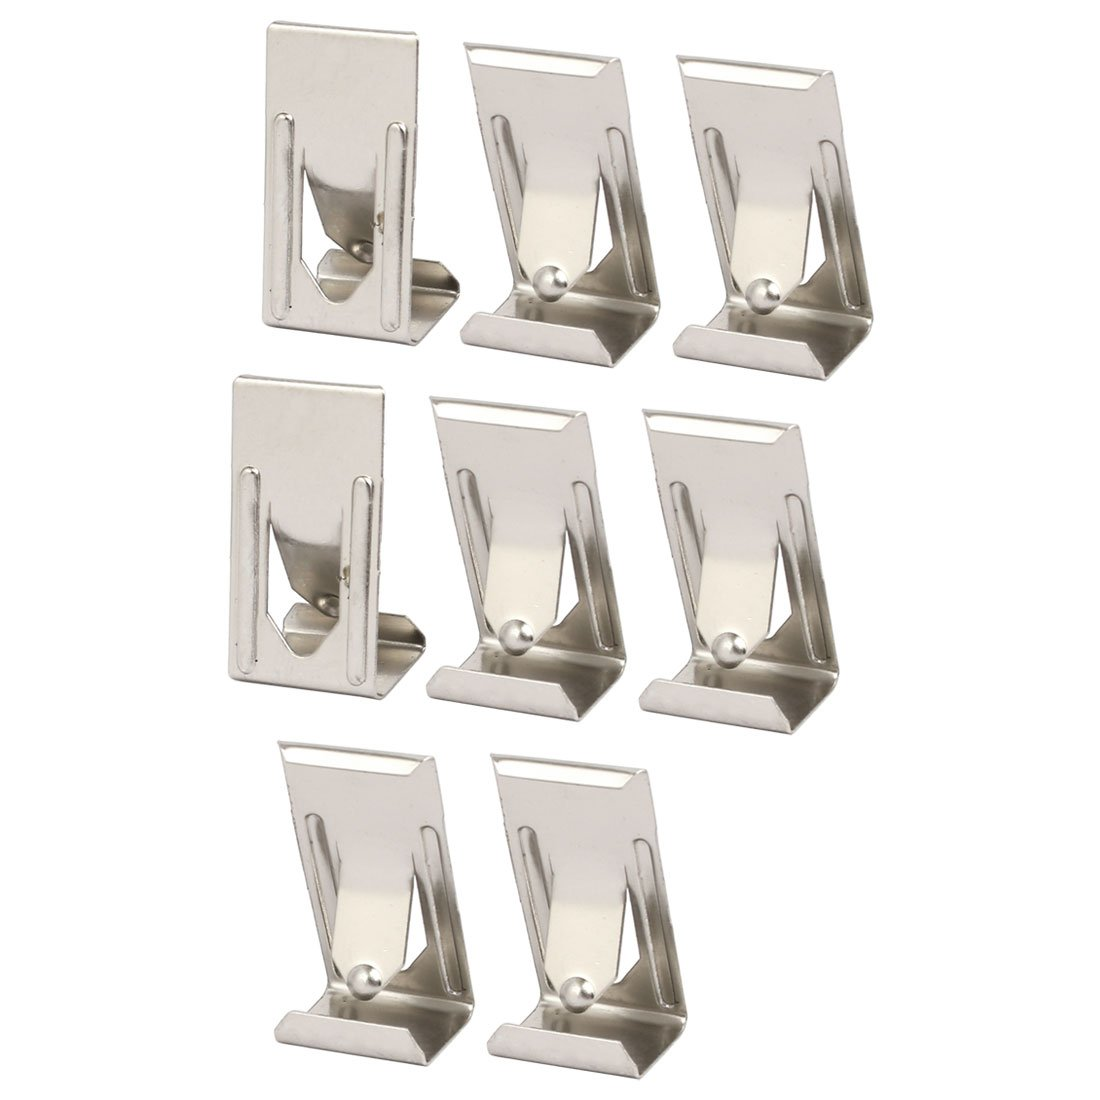 uxcell 26mmx14mm Picture Photo Frame Metal Spring Turn Clip Hanger Siver Tone 8pcs - - Amazon.com